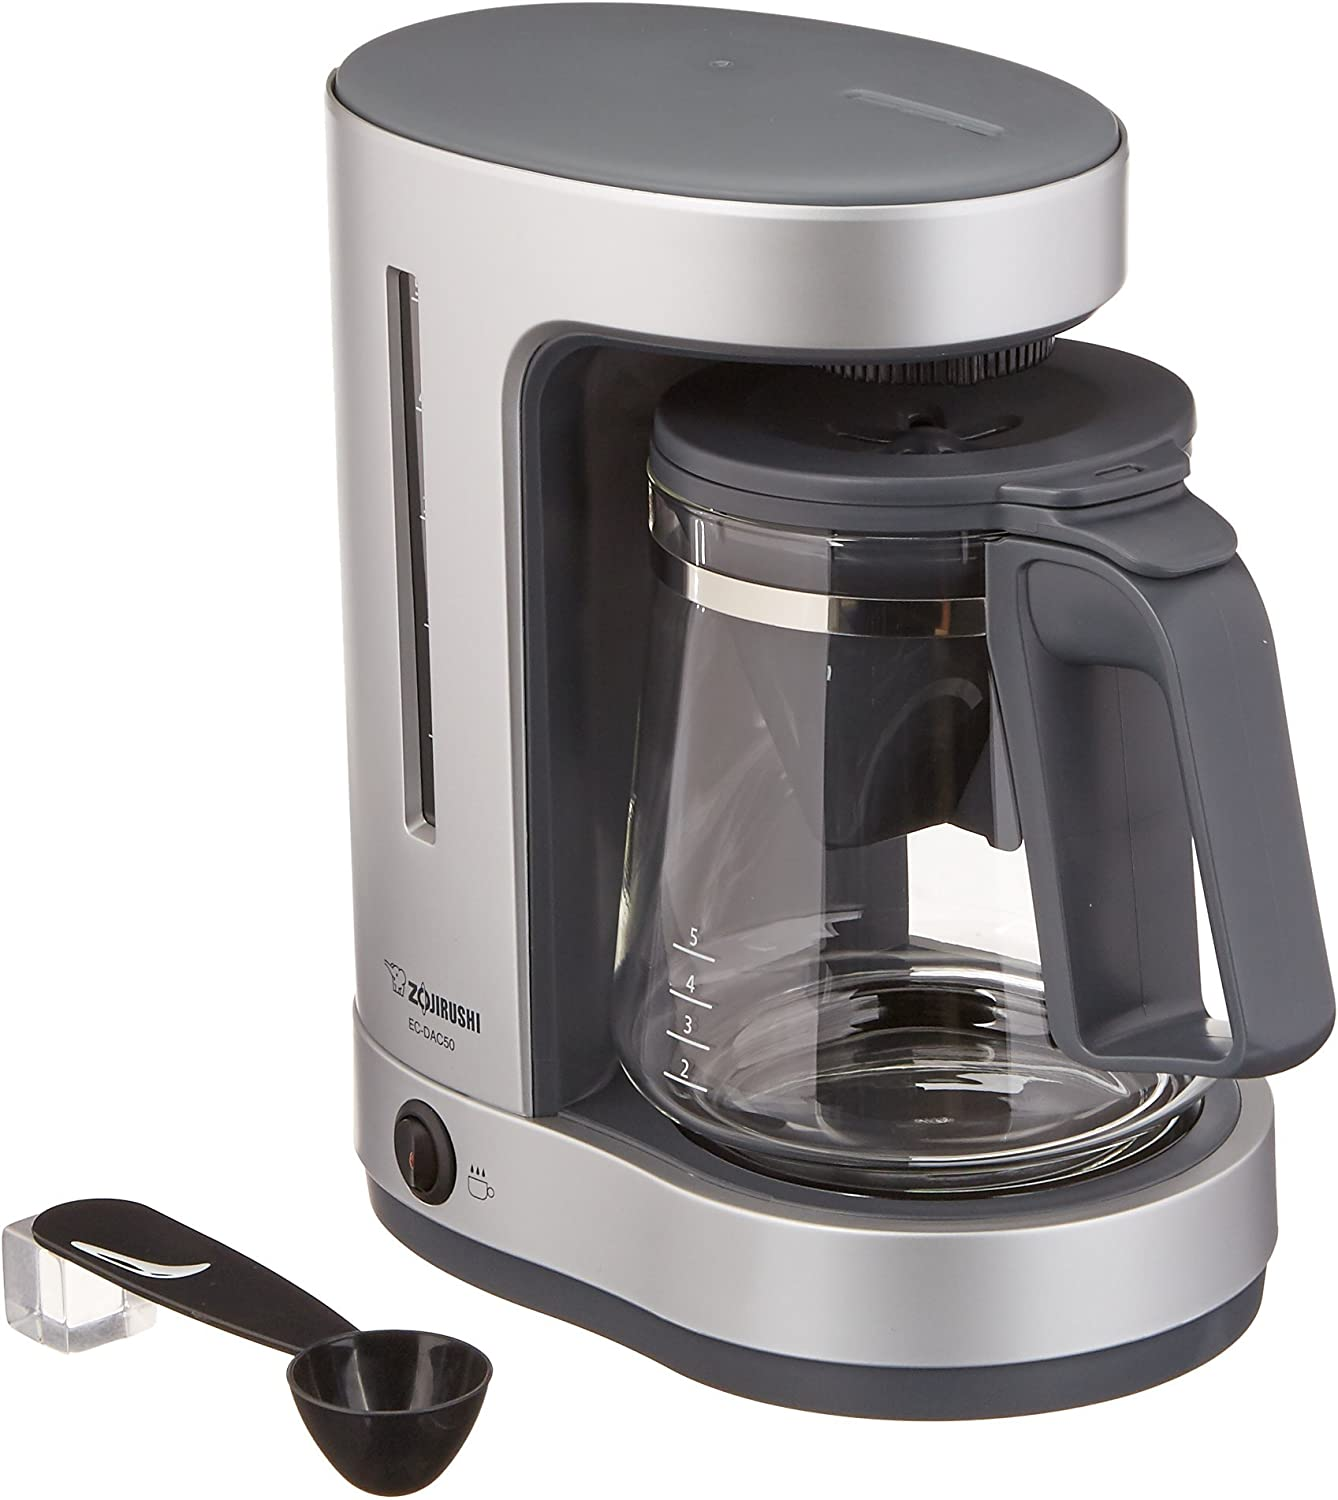 ZOJIRUSHI EC-DAC50 ZUTTO 5-CUP DRIP COFFEE MAKER